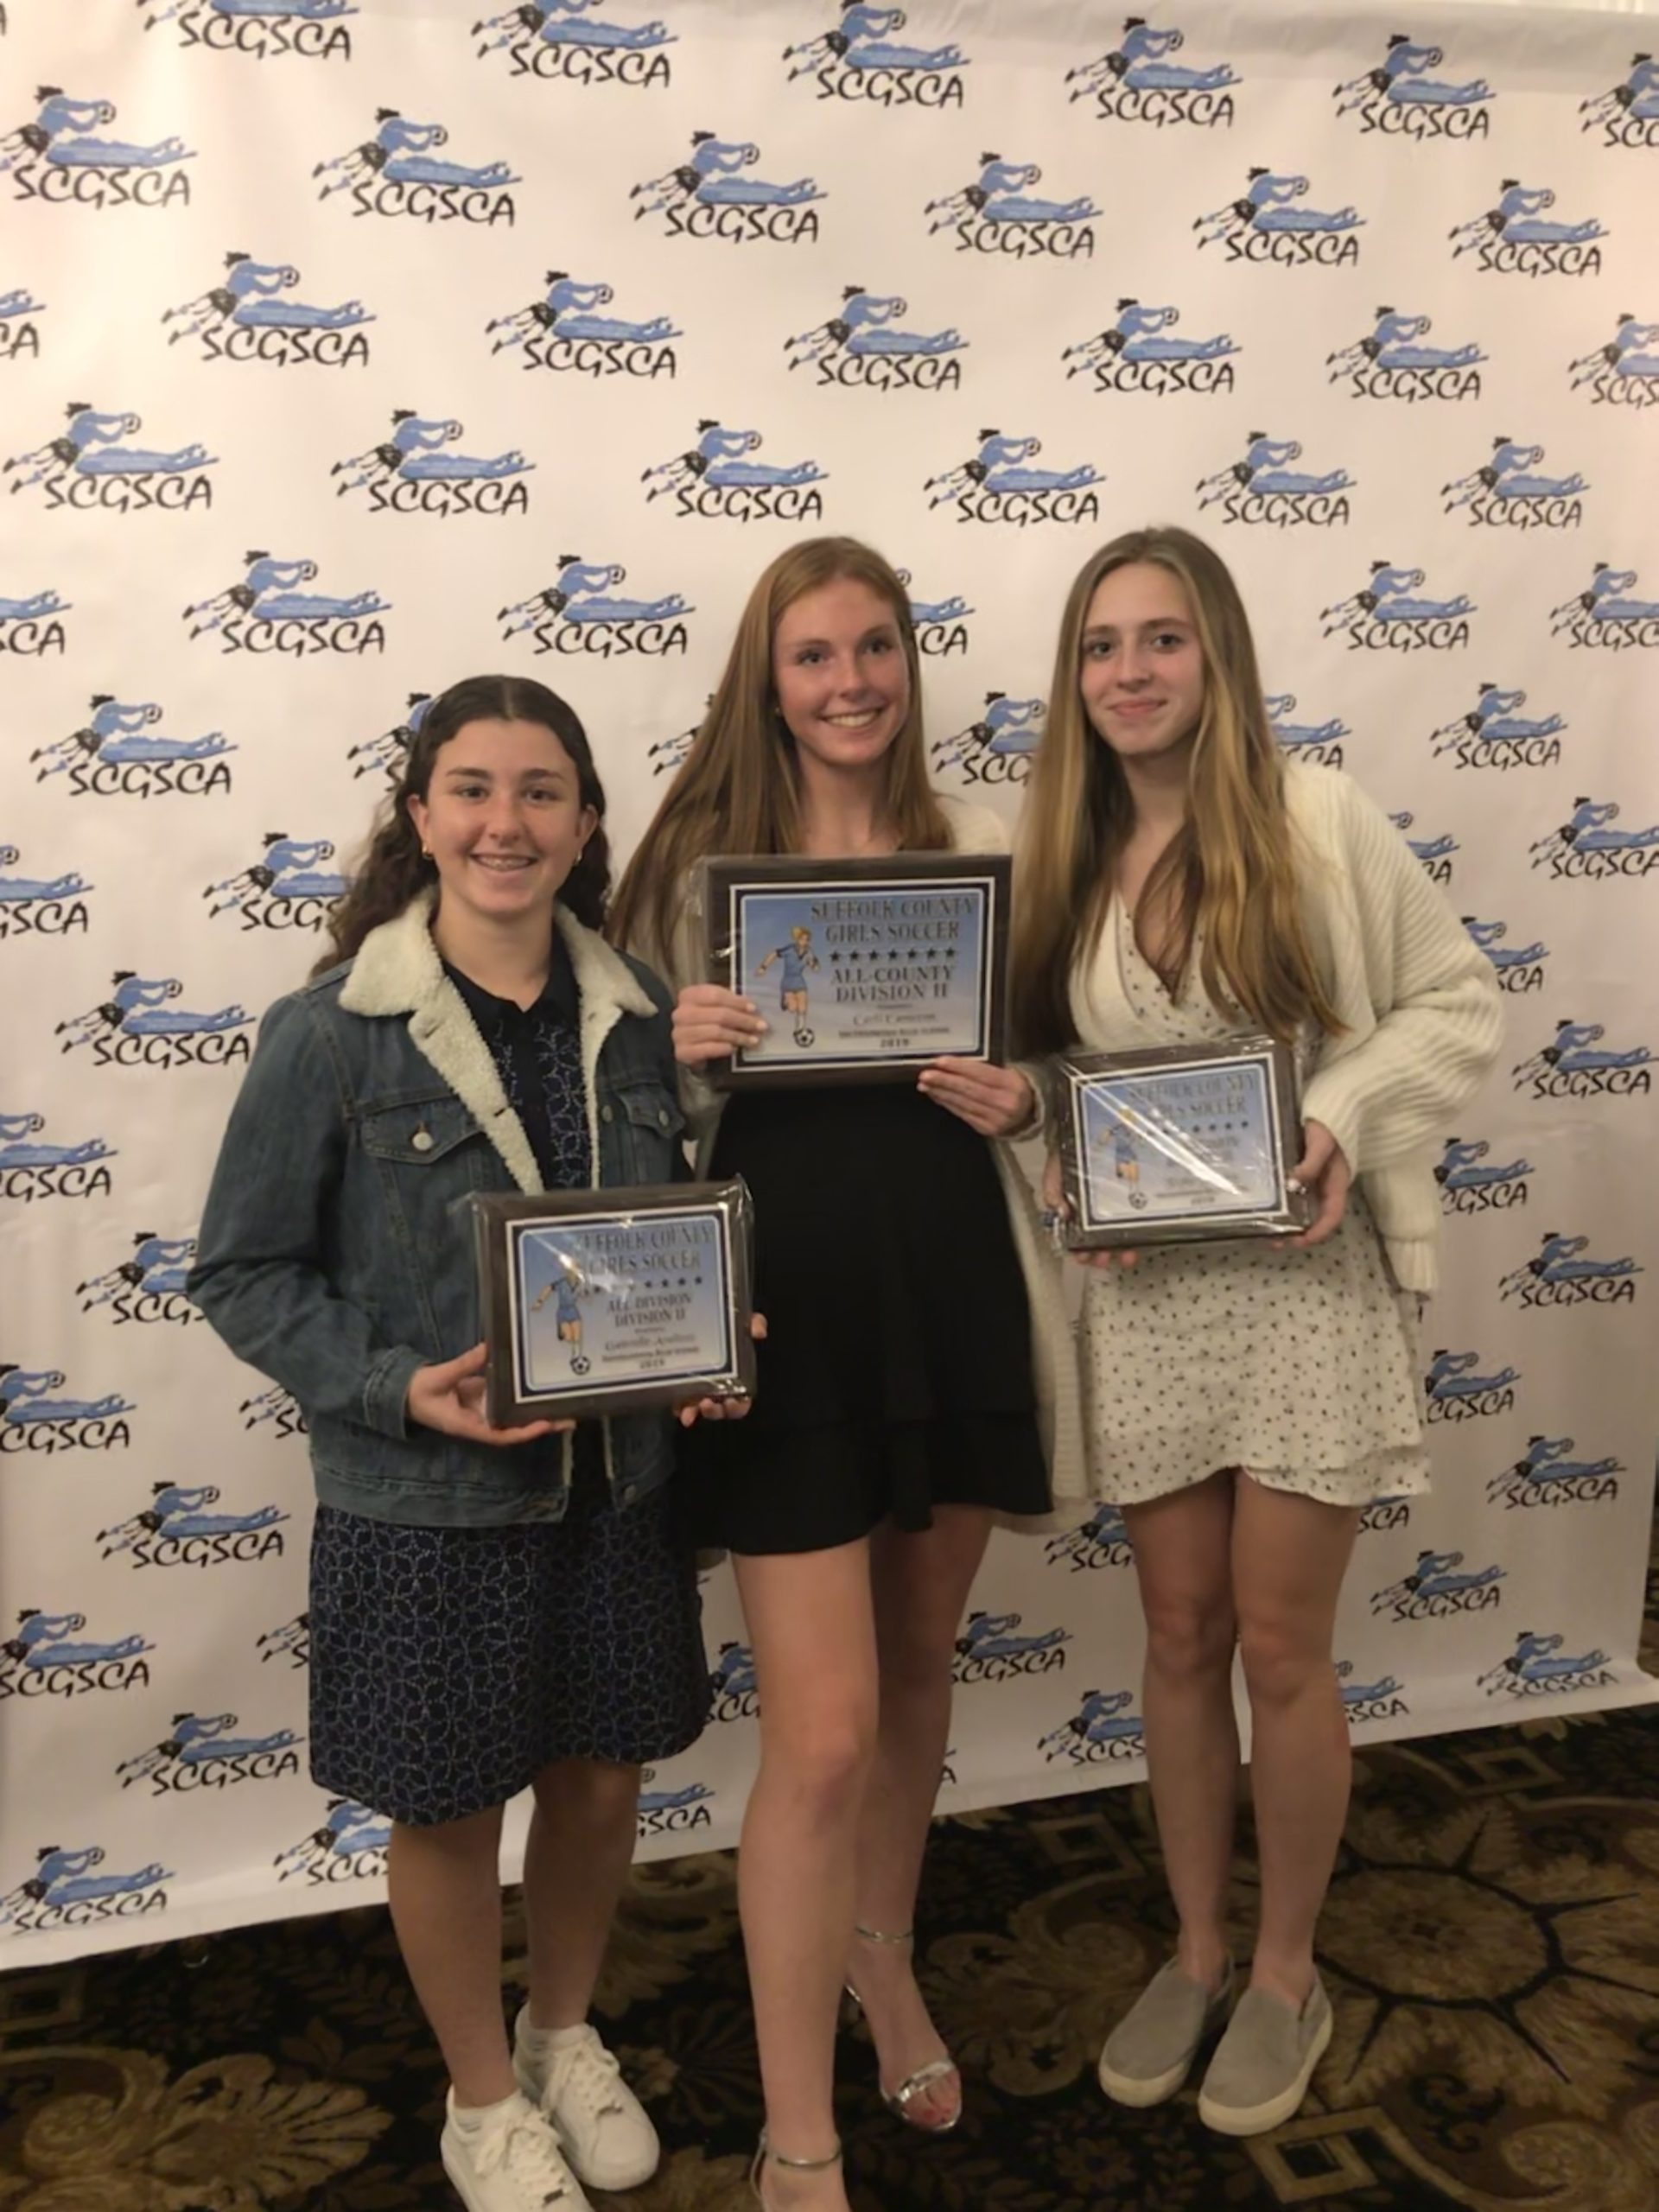 Southampton High School girls varsity soccer players, from left, Ellie Avallone, Carli Cameron and Taylor Zukowky were recognized at the Suffolk County Division II Awards Dinner on November 26 at Villa Lombardi's in Holbrook. Avallone and Zukosky received All-Division awards, while Cameron was honored with All-County.